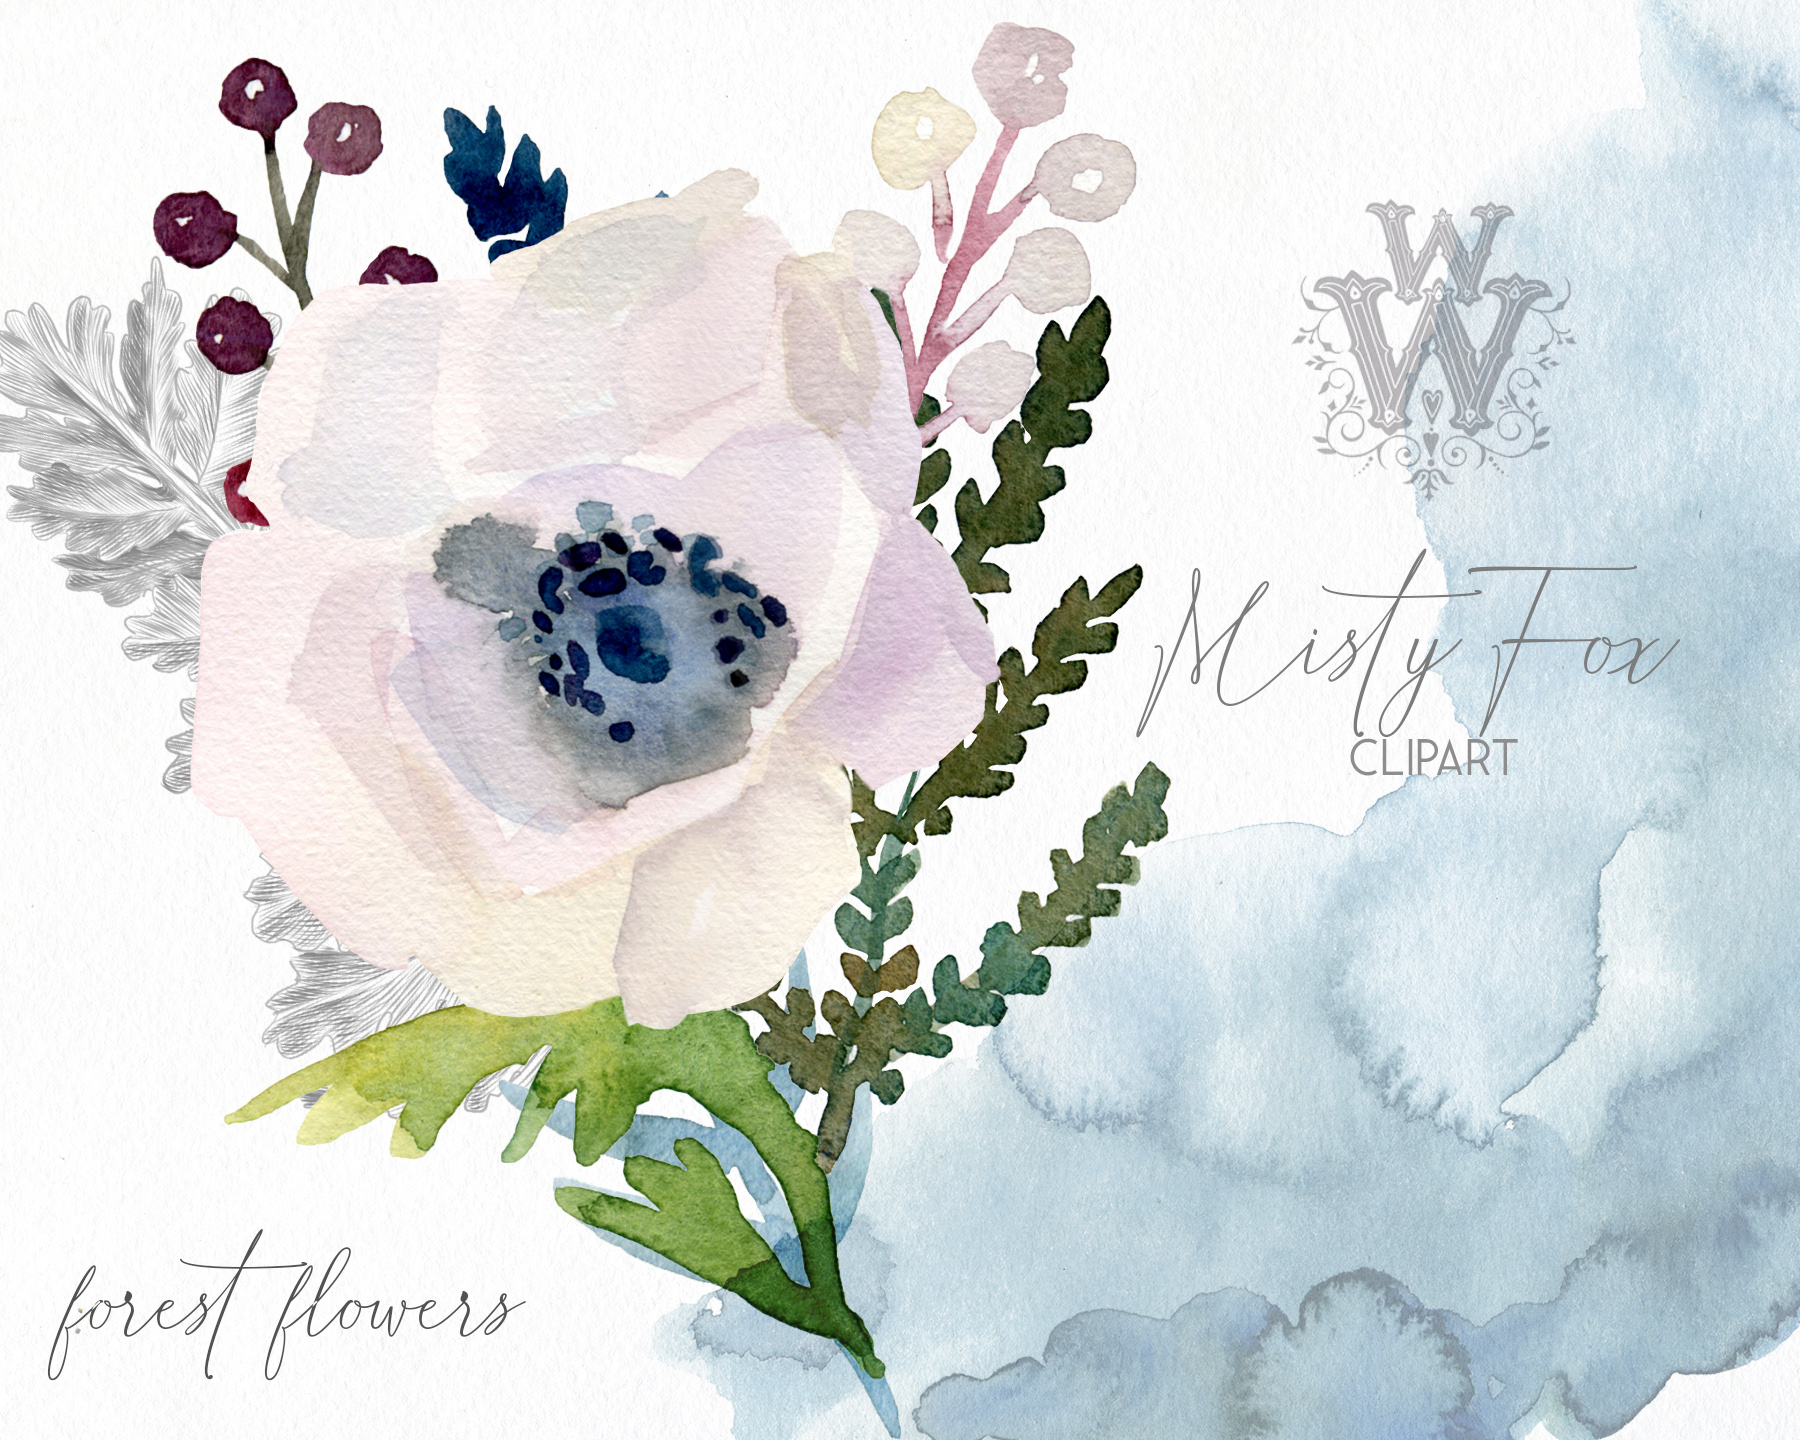 Watercolor forest flowers clipart, fox graphics wedding art example image 6